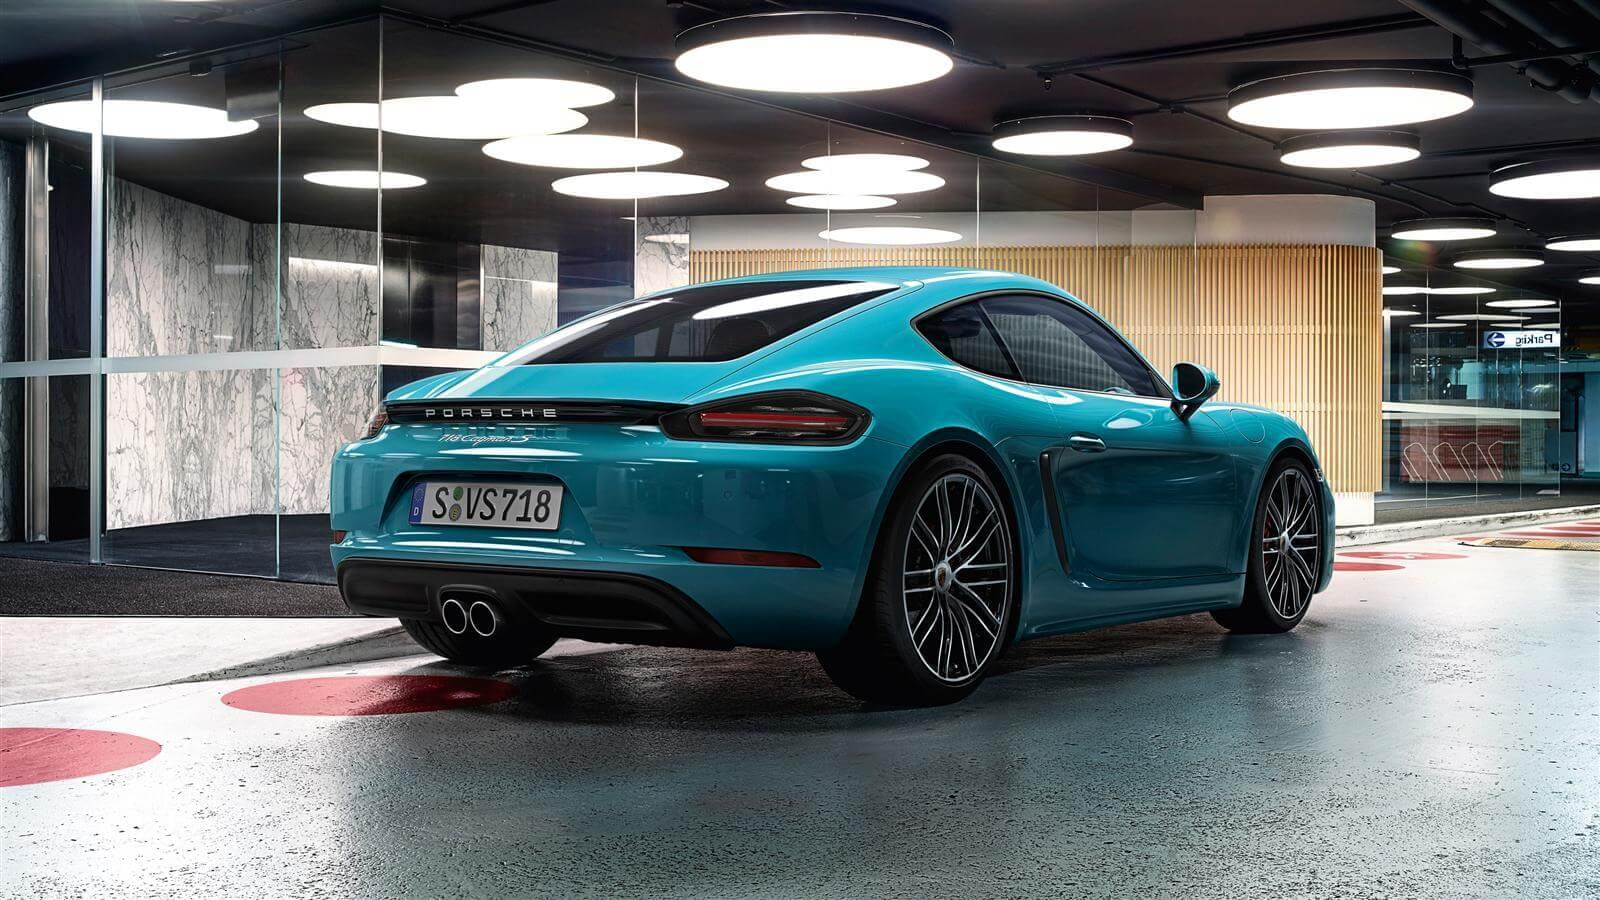 Cayman S back